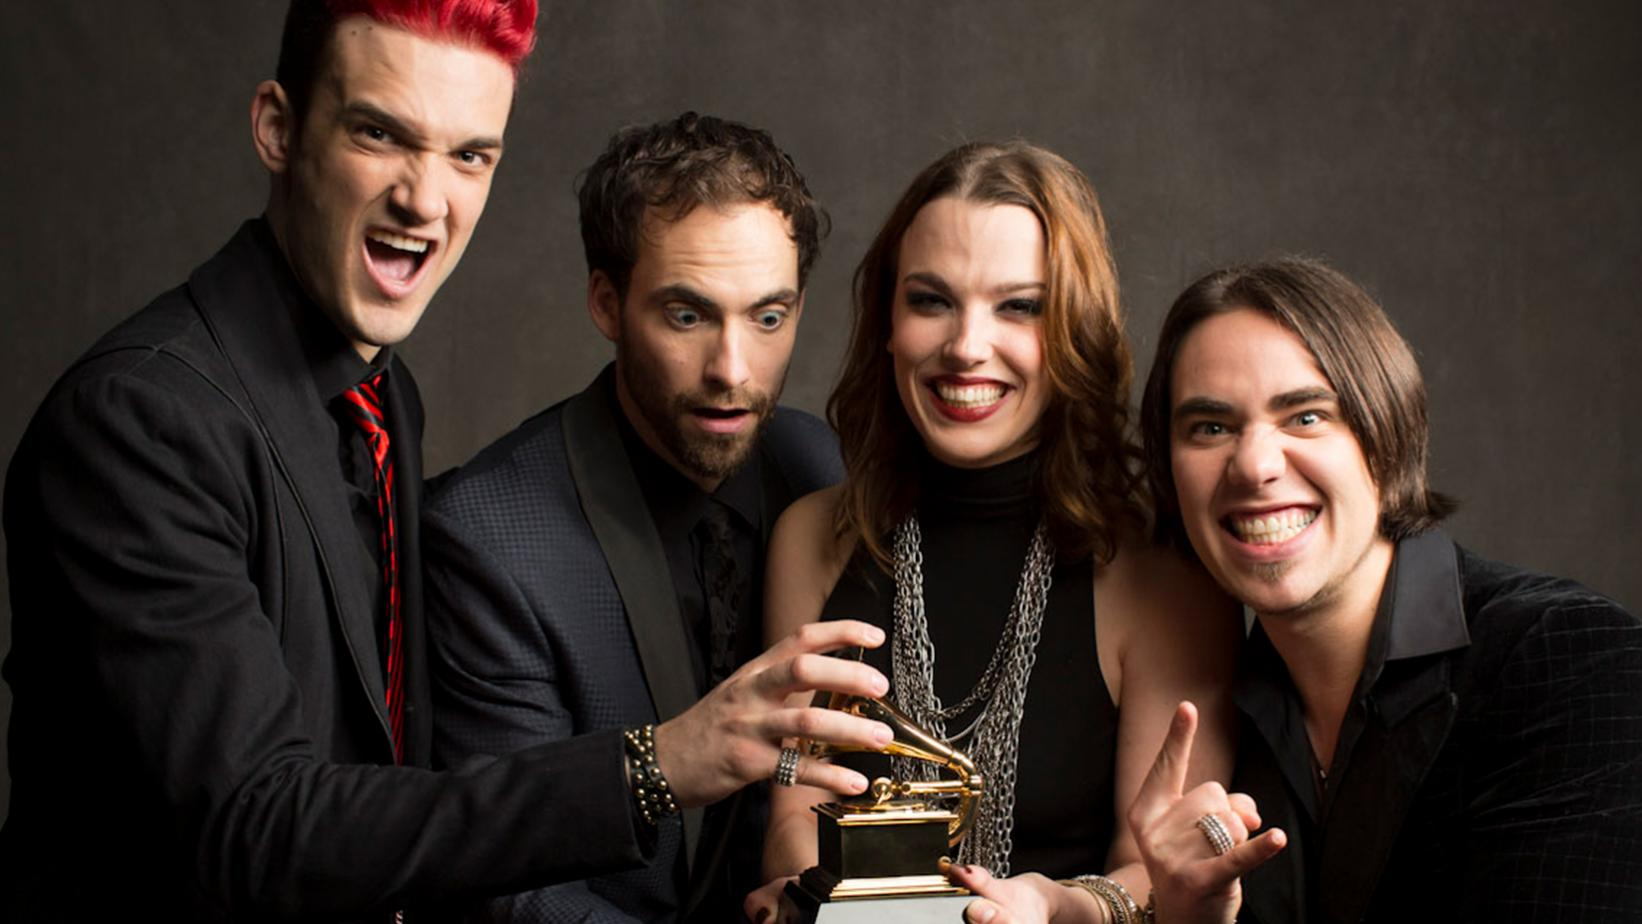 Halestorm's Lzzy Hale is a Grammy presenter!